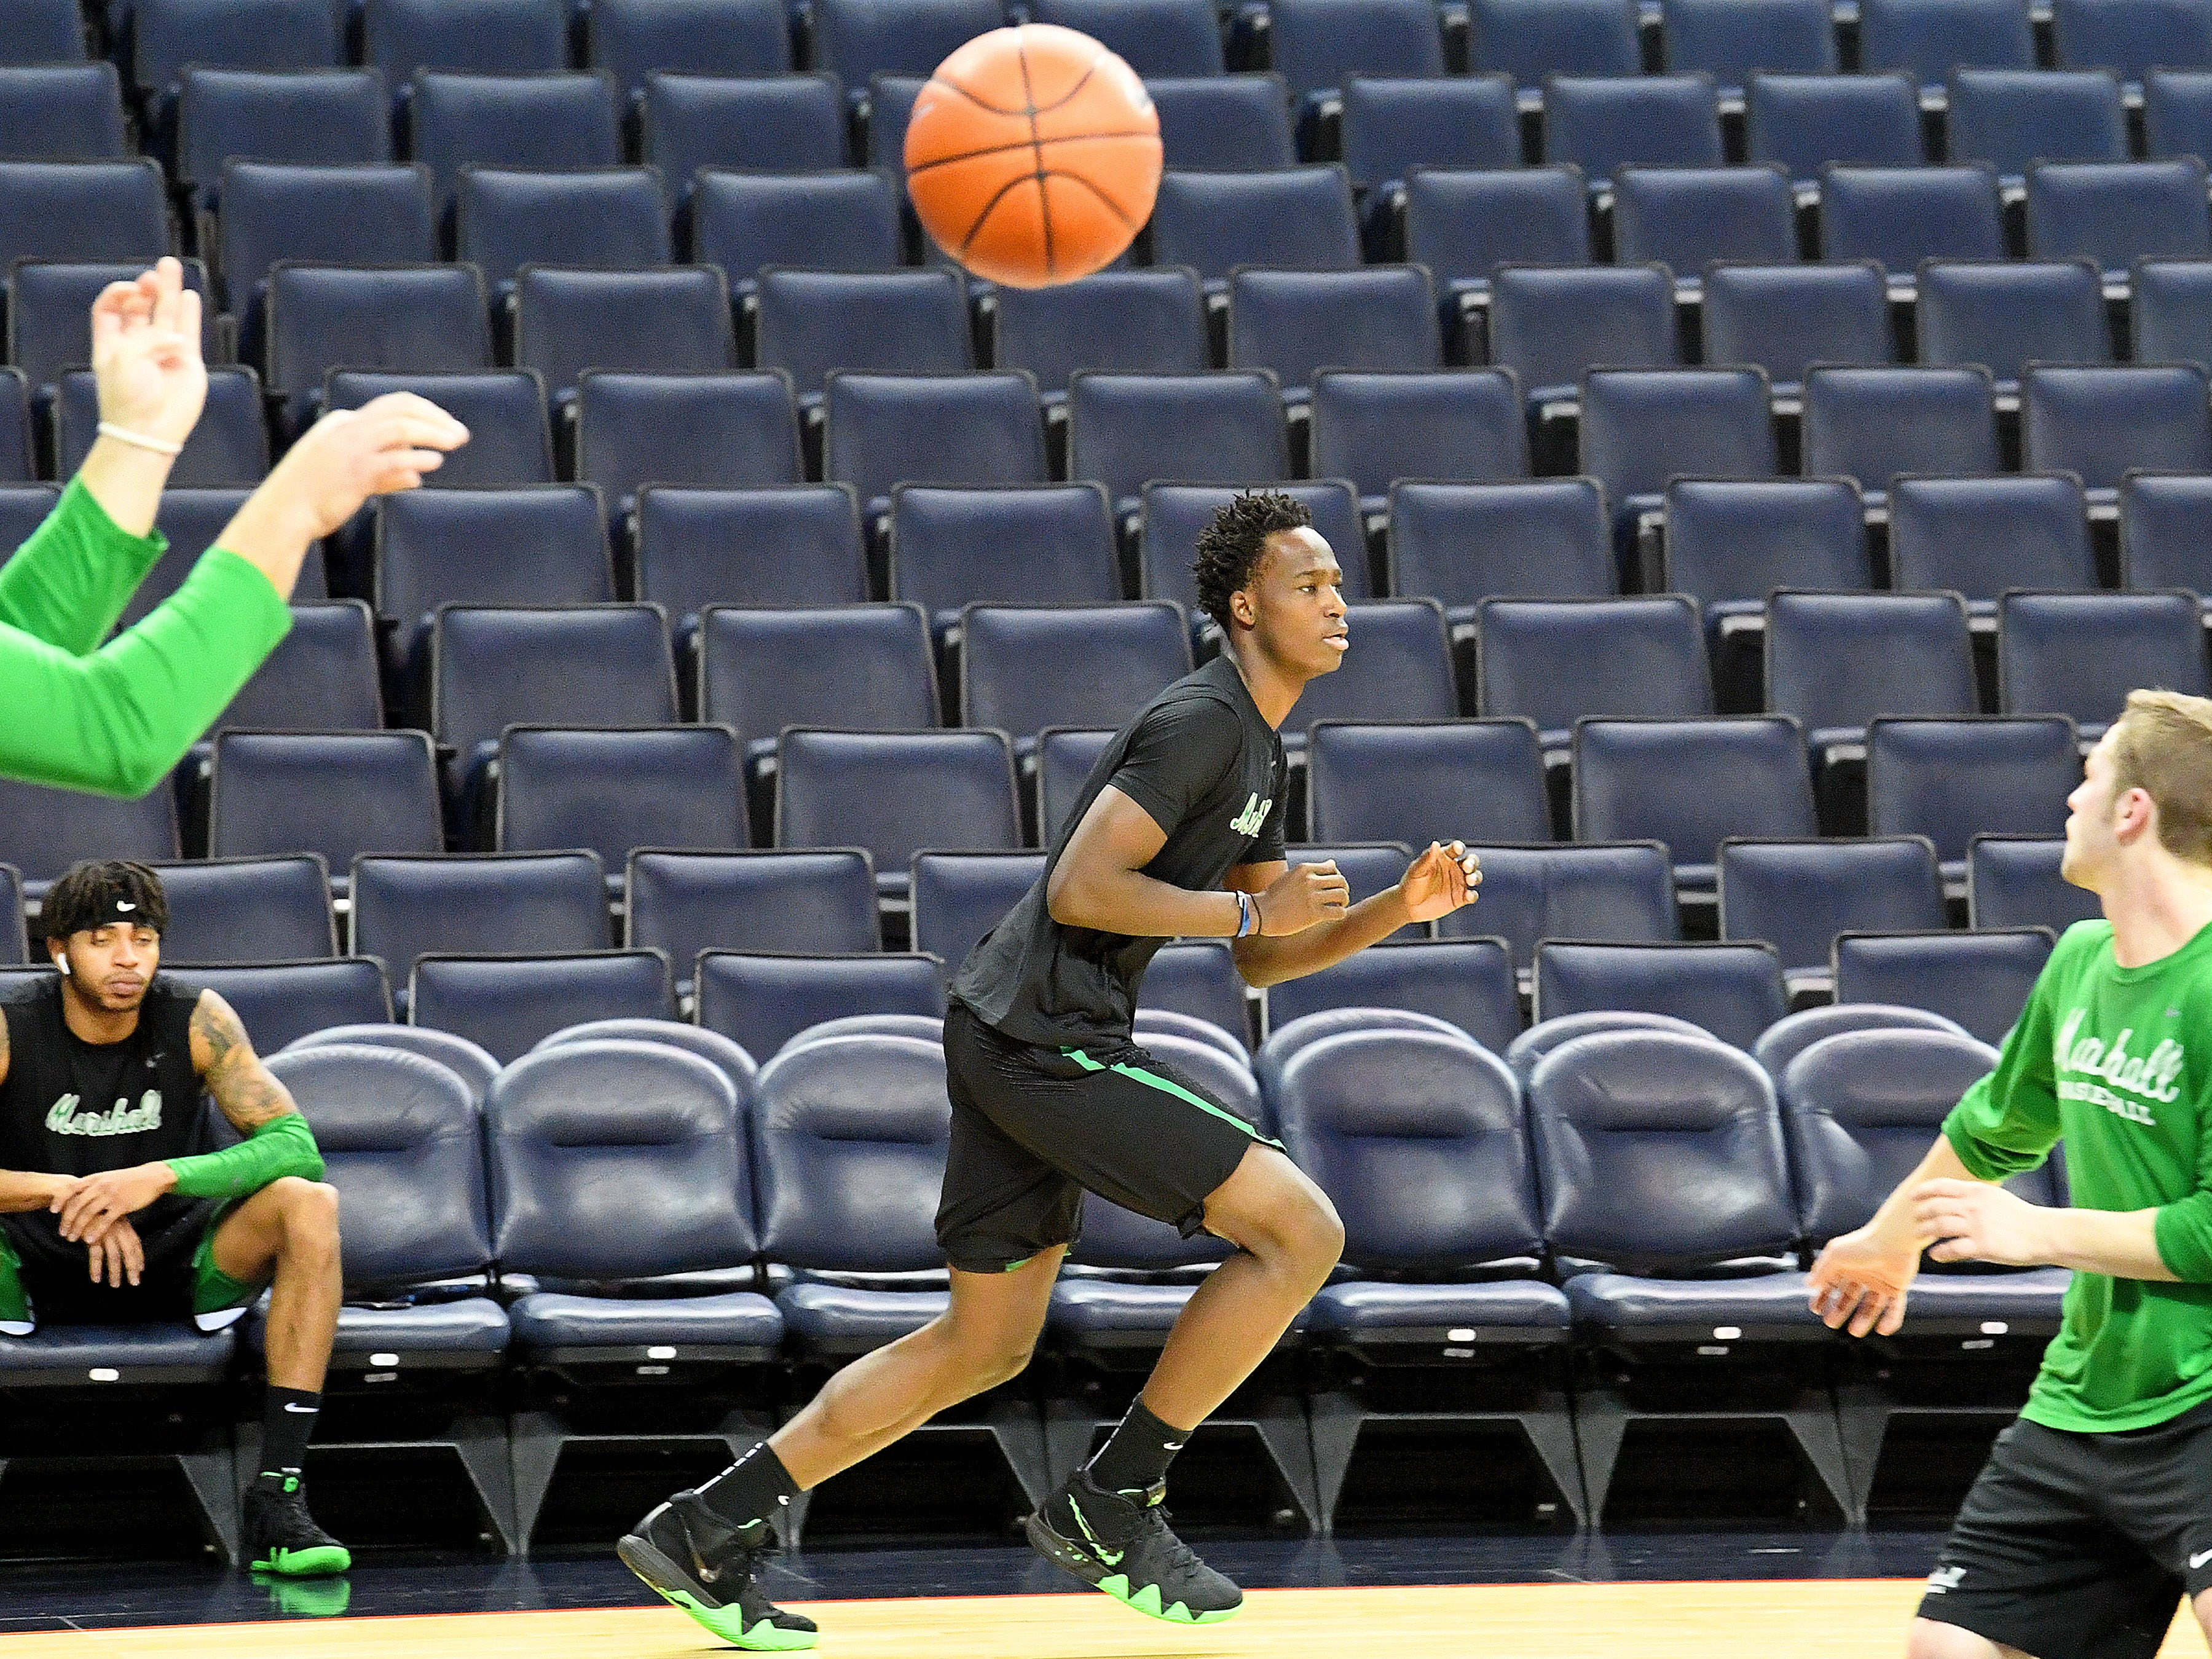 Marshall's Darius George, former R.E. Lee star, warms up with team before the start of their game against University of Virginia, played at the John Paul Jones Arena on Dec. 31, 2016.